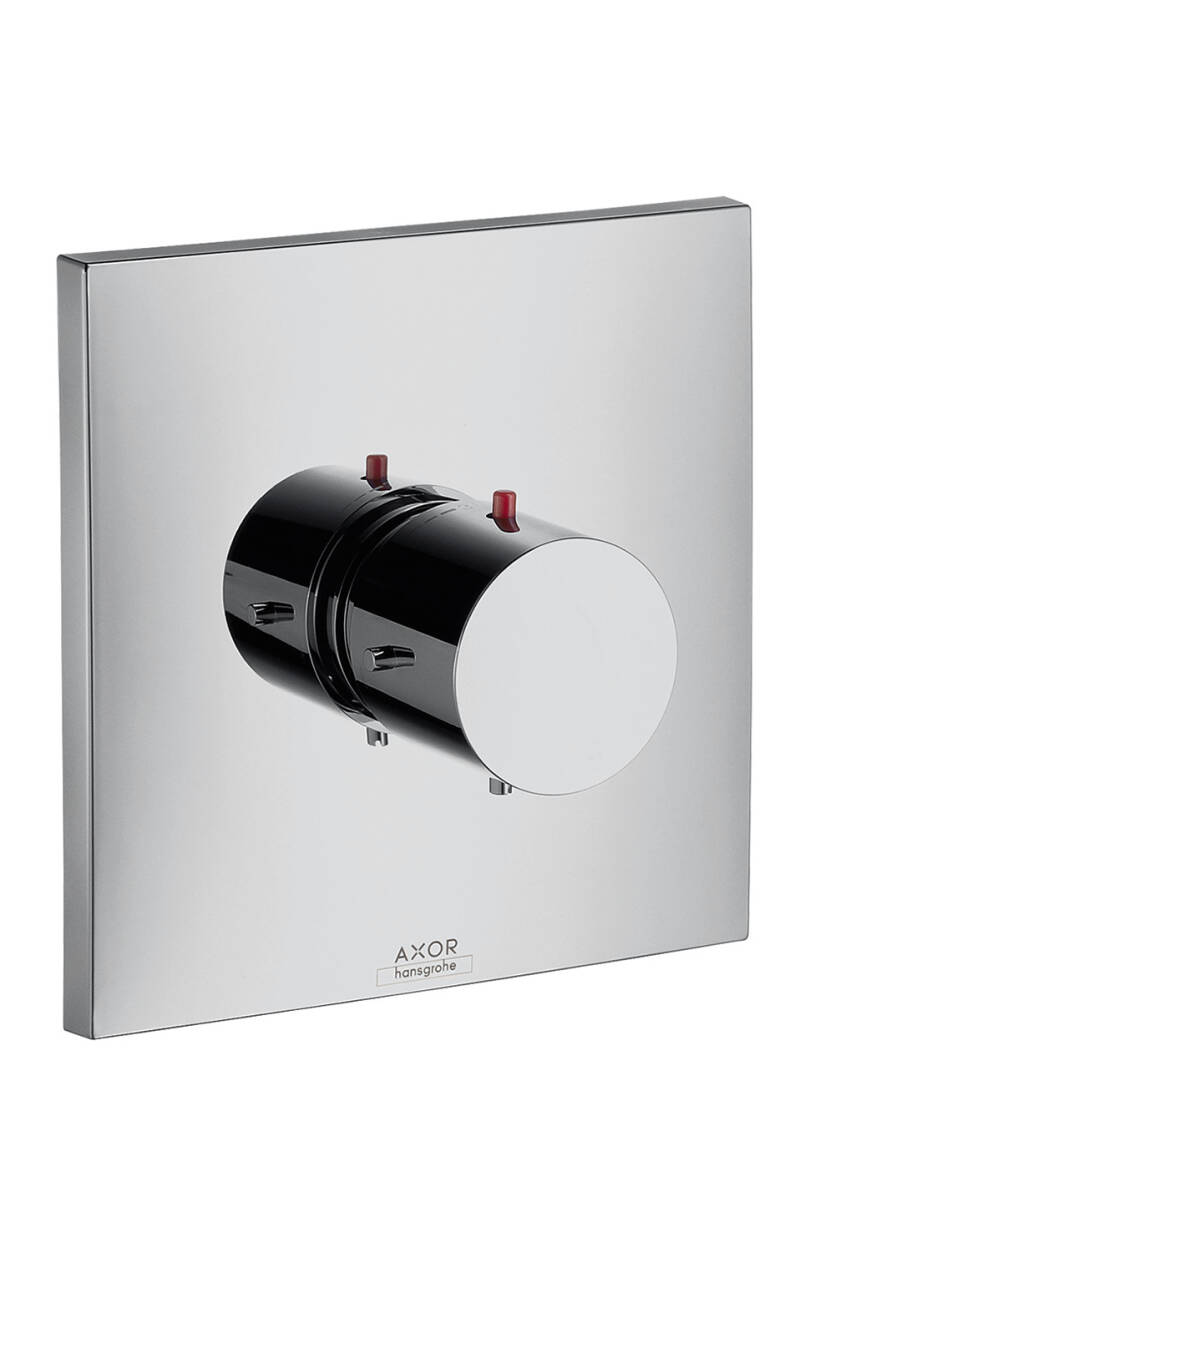 Thermostat HighFlow for concealed installation, Brushed Black Chrome, 10717340